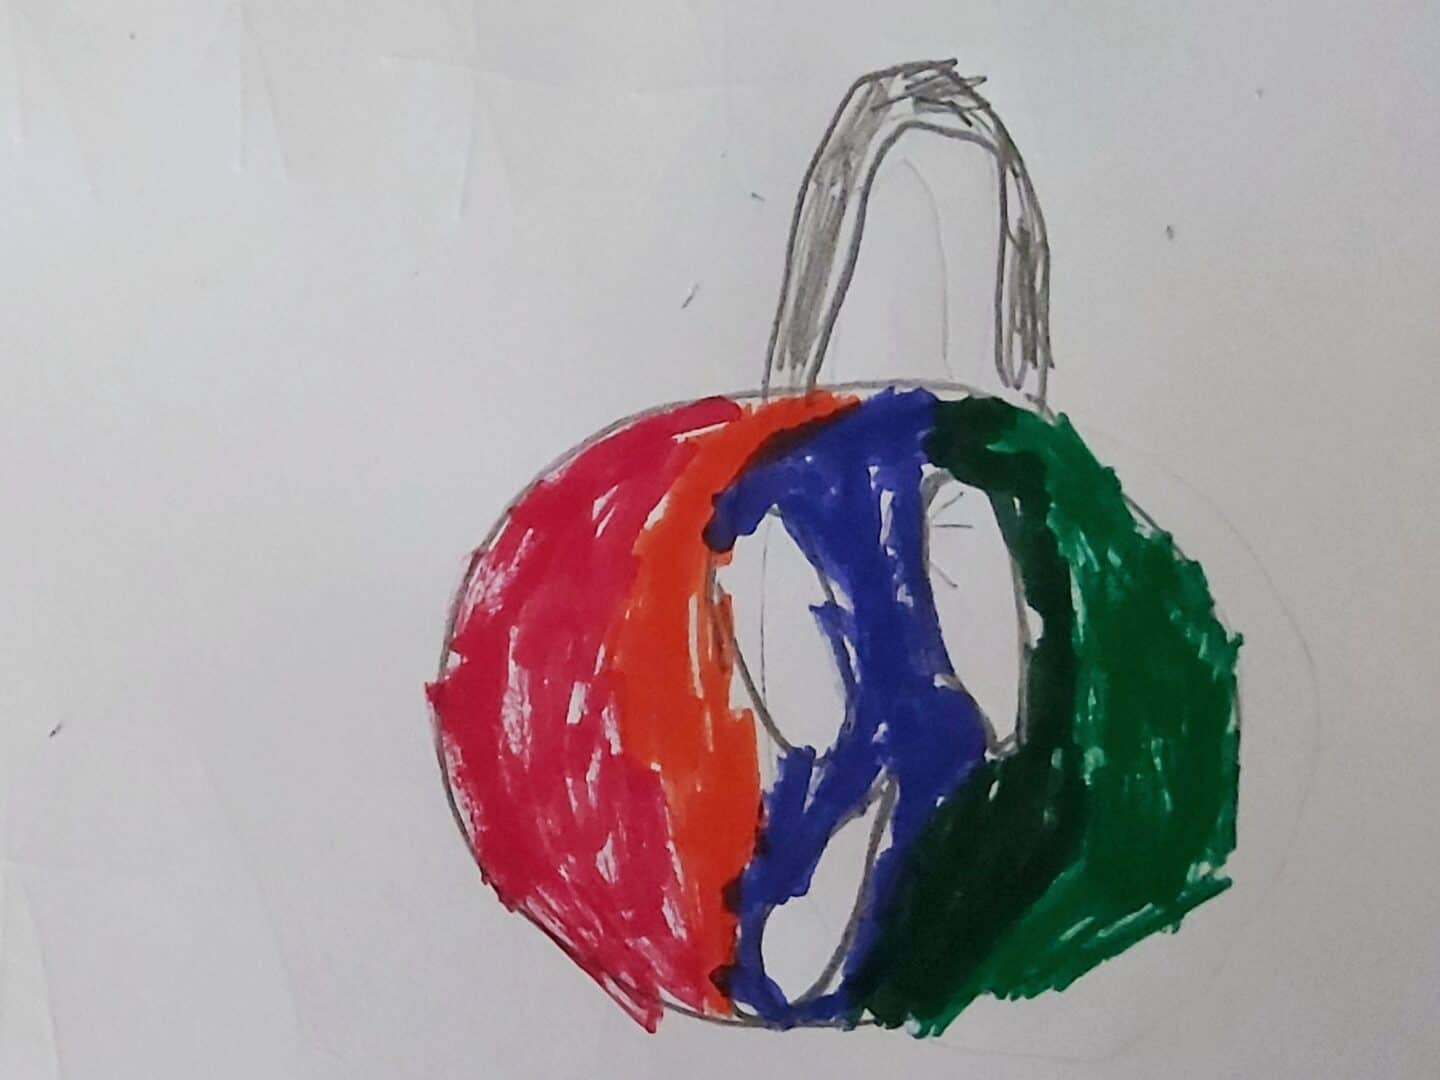 Drawing of a Christmas Bauble